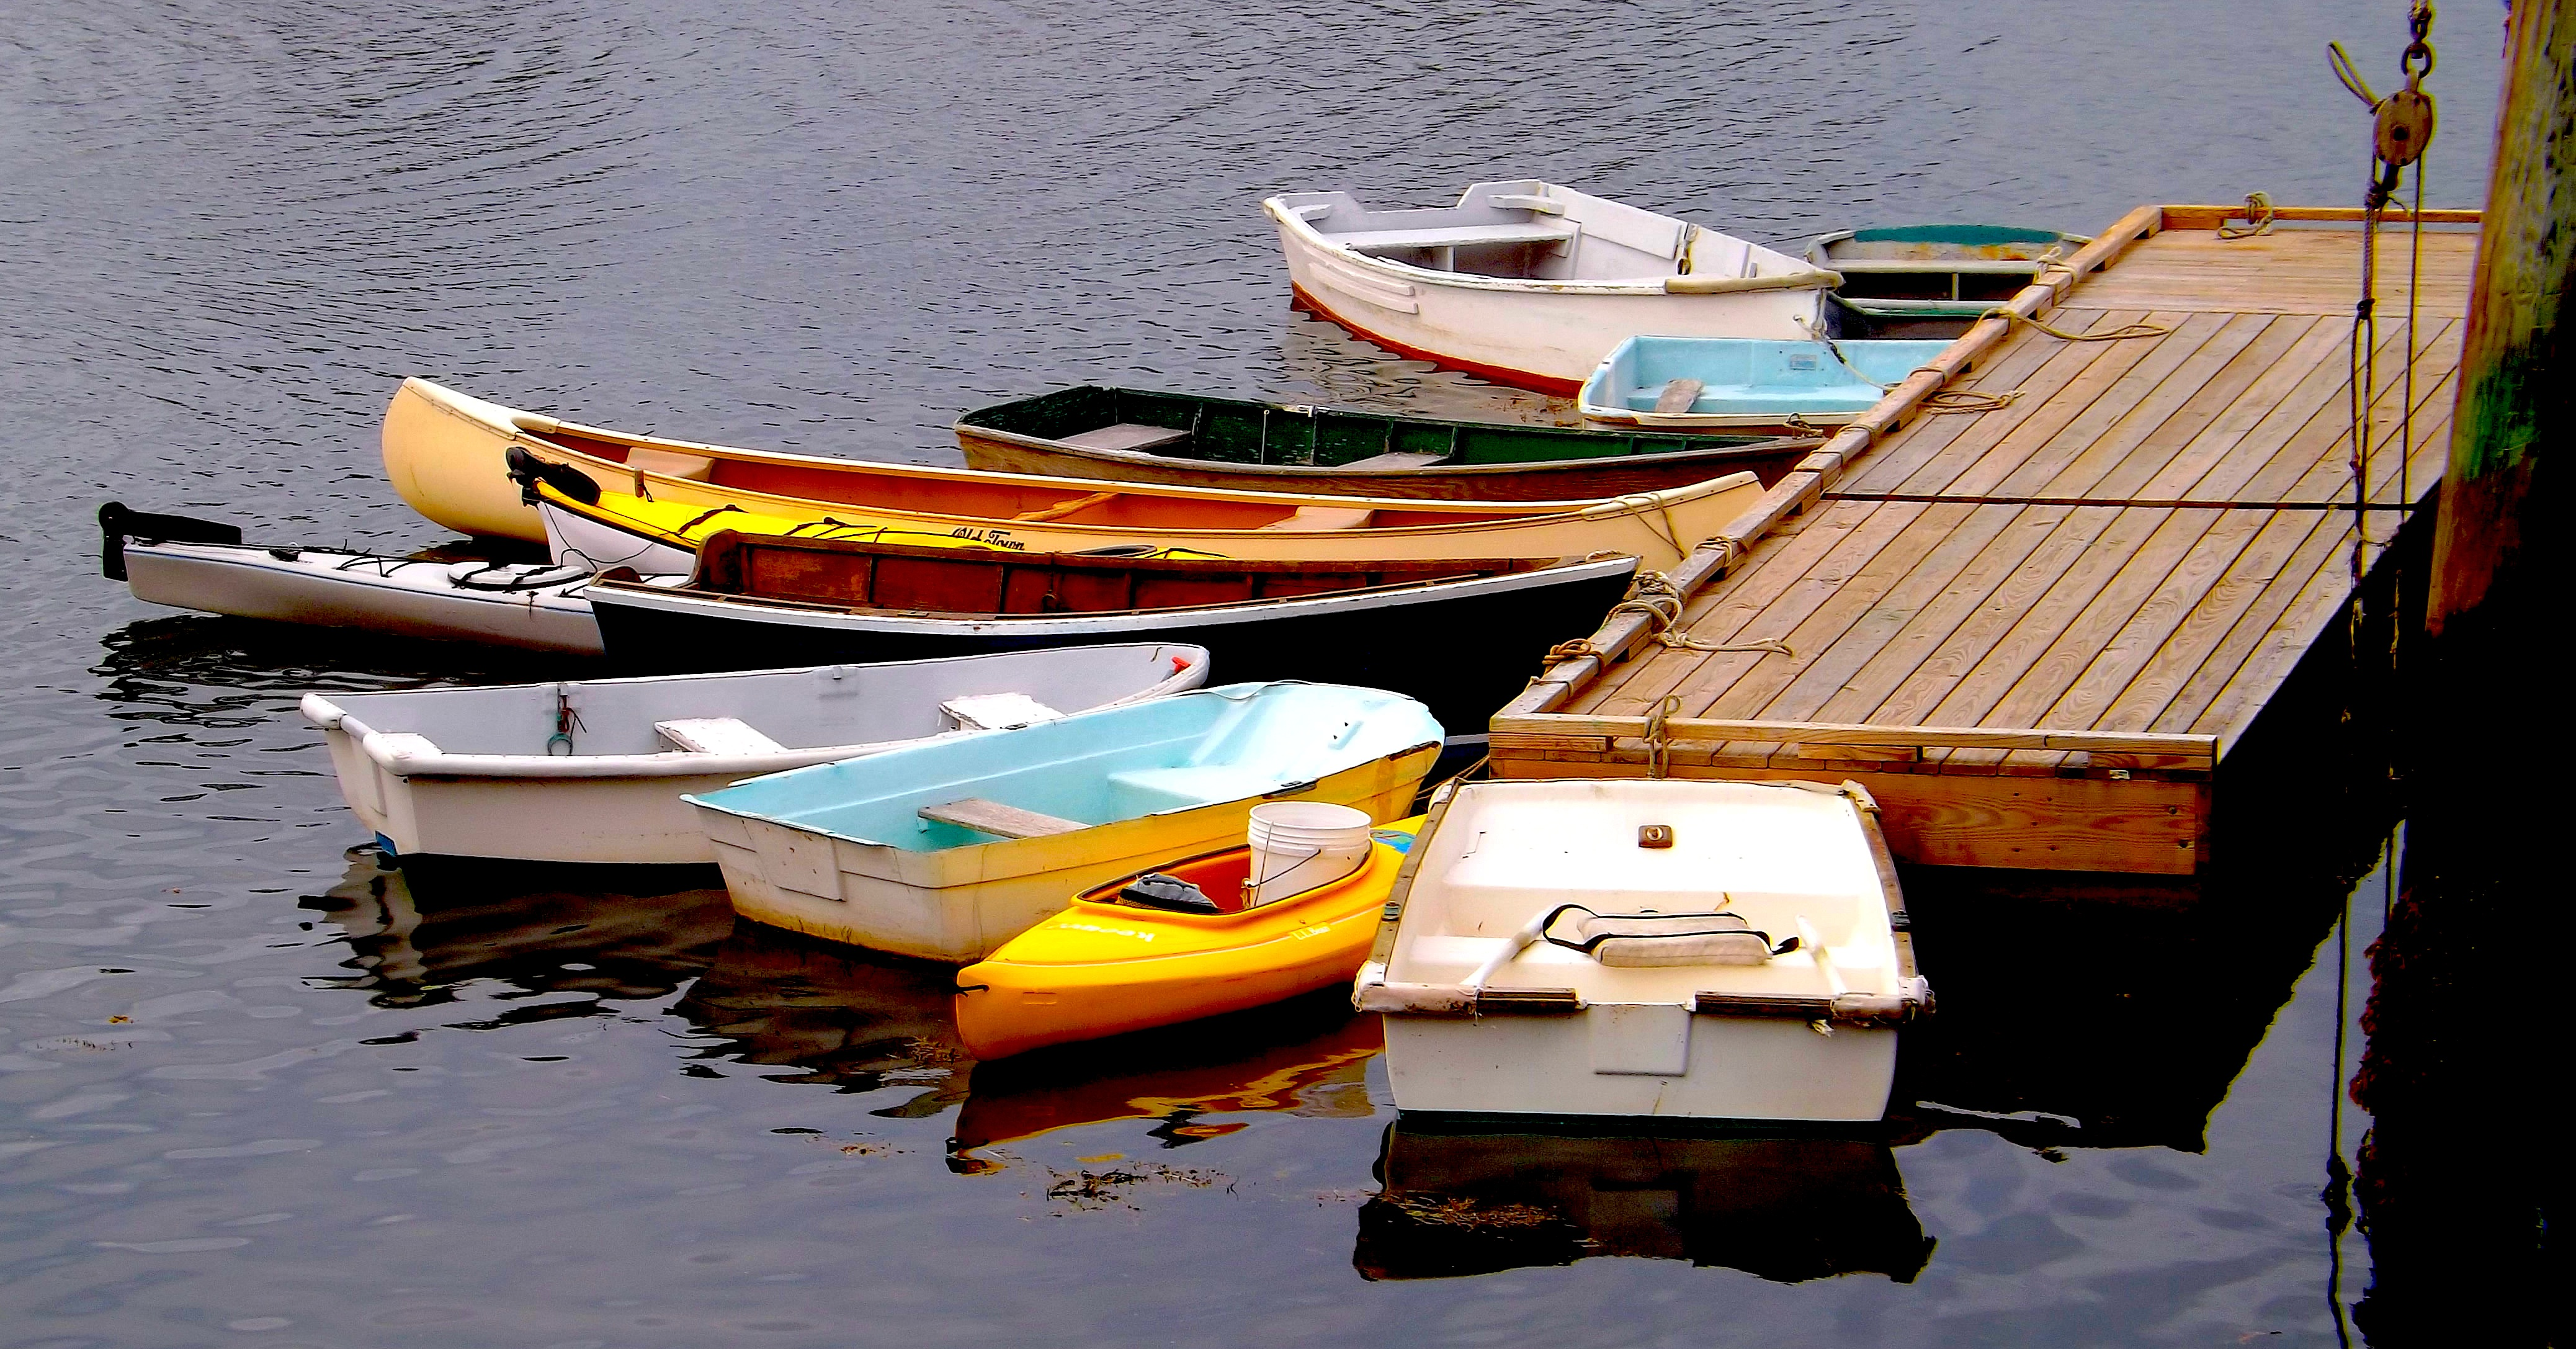 =======DINGHYS AT THE DOCK IN PERKINS COVE OGUNQUIT MAINE===================================================================================================================DINGHYS AT THE DOCK IN PERKINS COVE OGUNQUIT MAINE